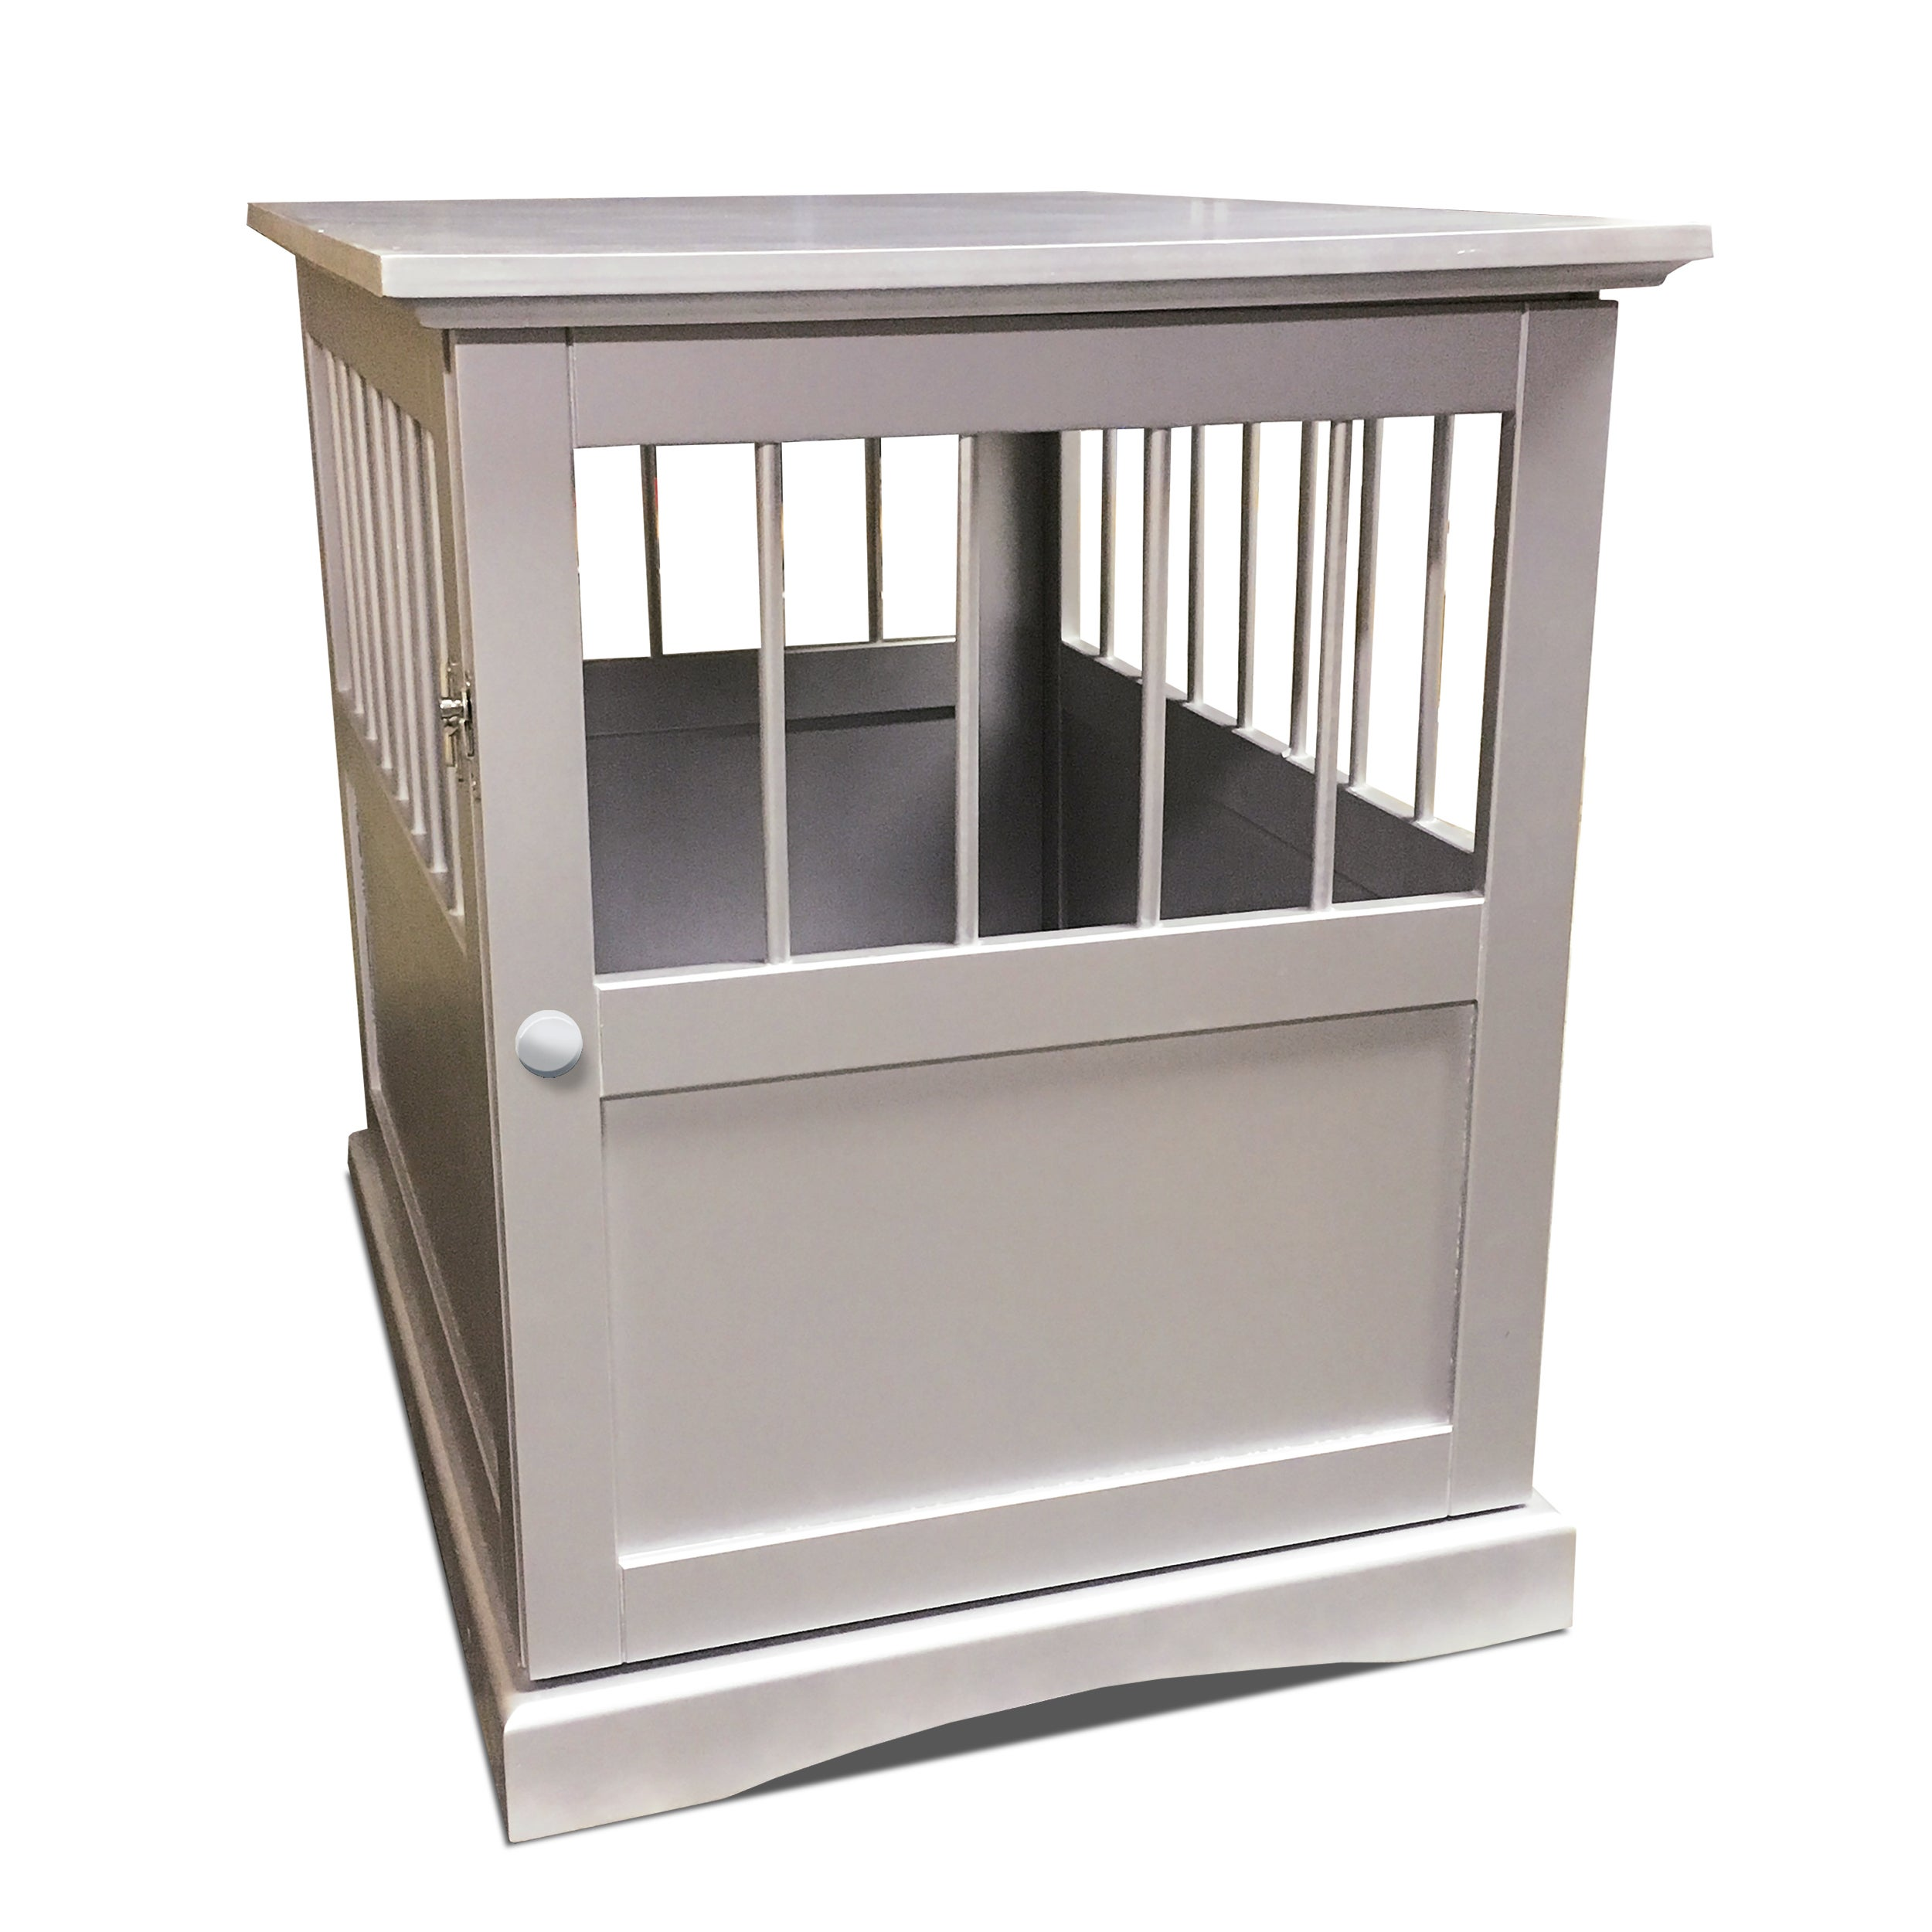 Shop Furhaven Dog Crate Furniture End Table Free Shipping Today Jpg  2500x2500 Shipping Crate Furniture Small